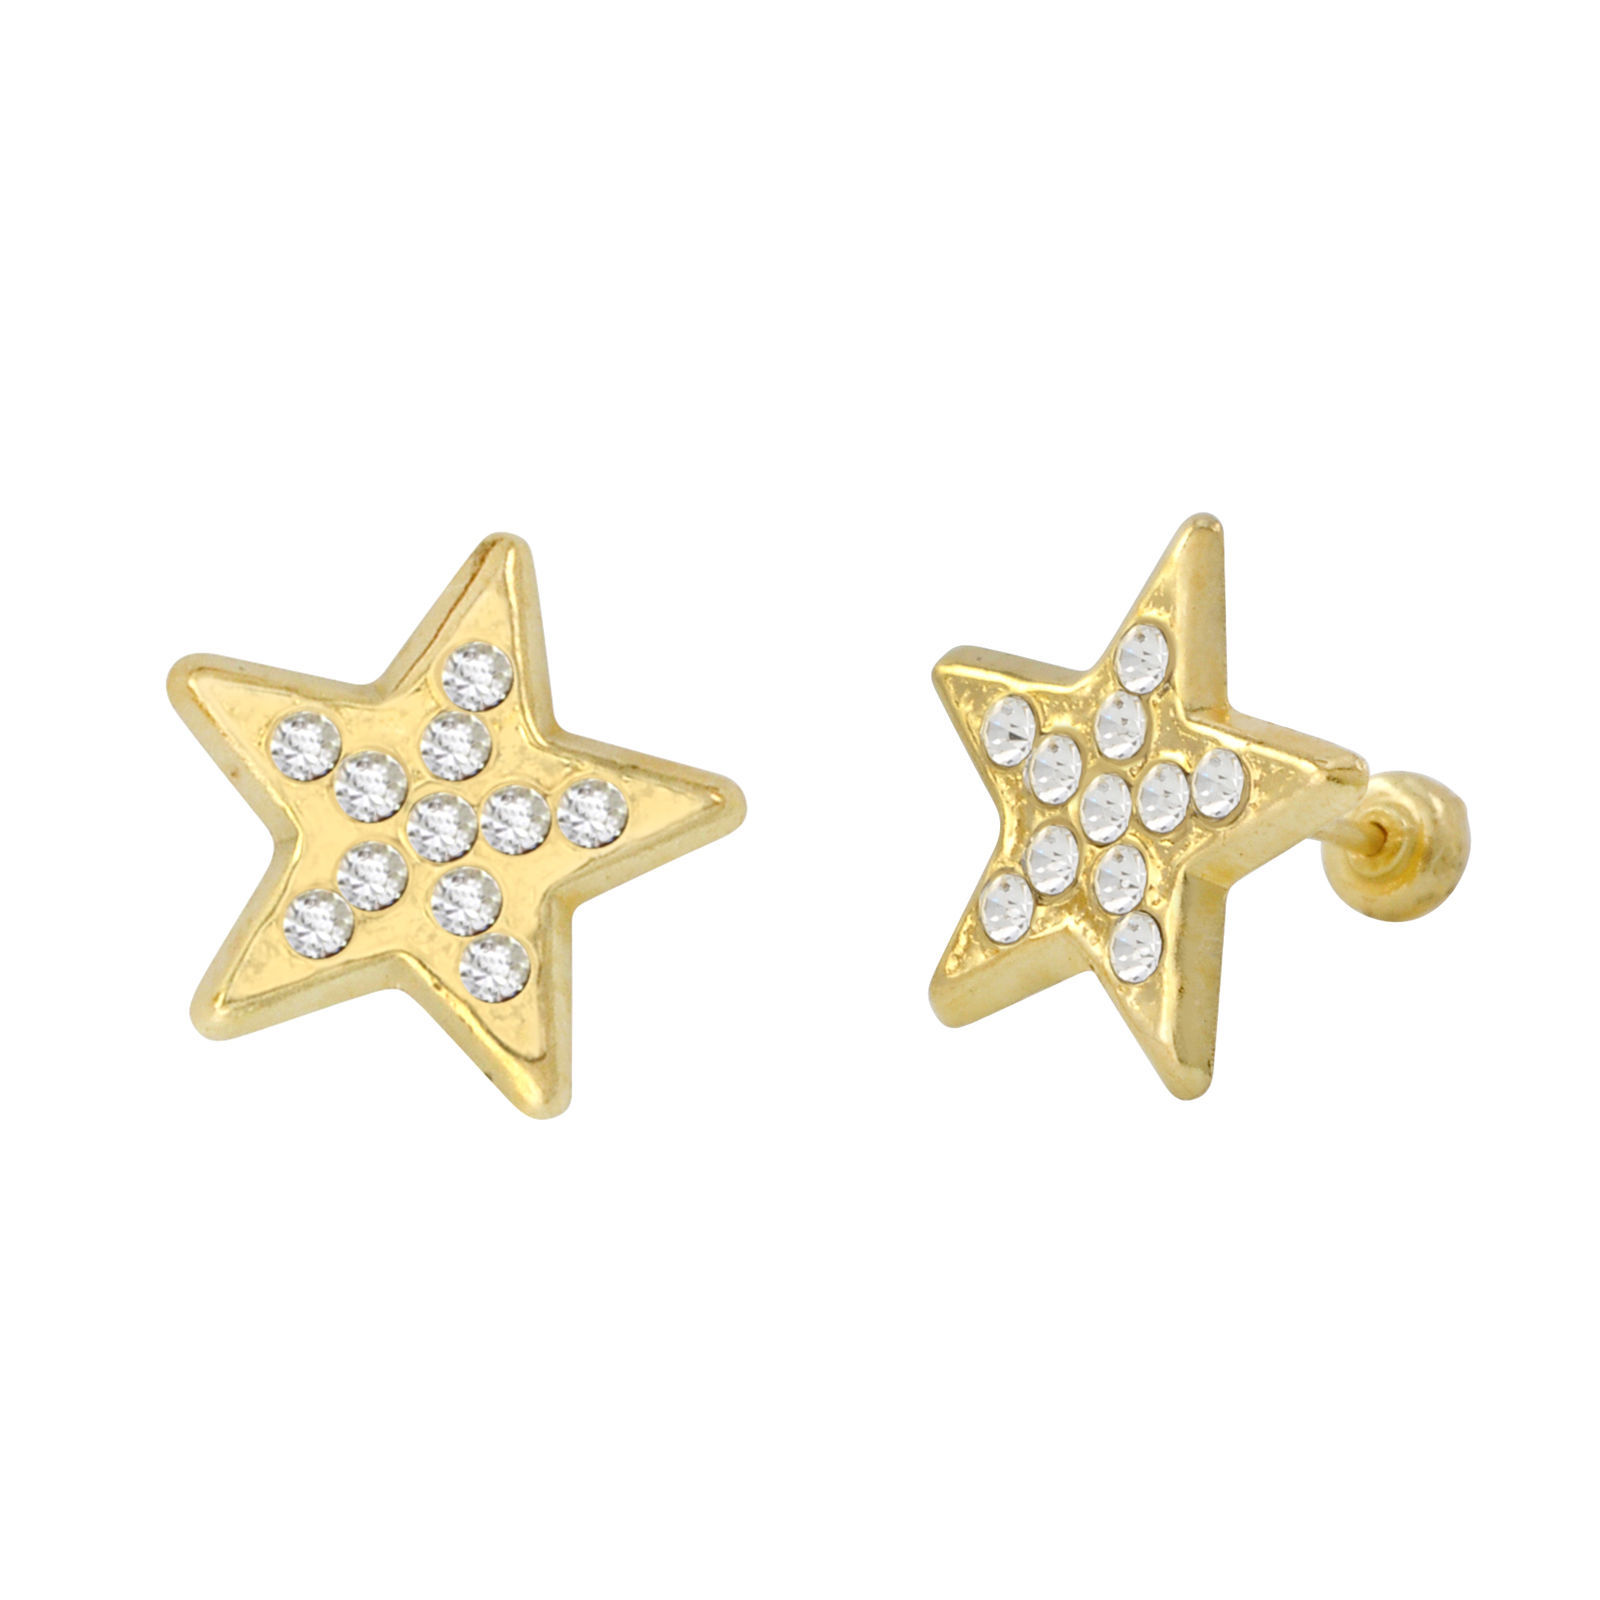 Star Stud Earrings 10k Yellow Gold Pave Cubic Zirconia with Screwbacks 10x10